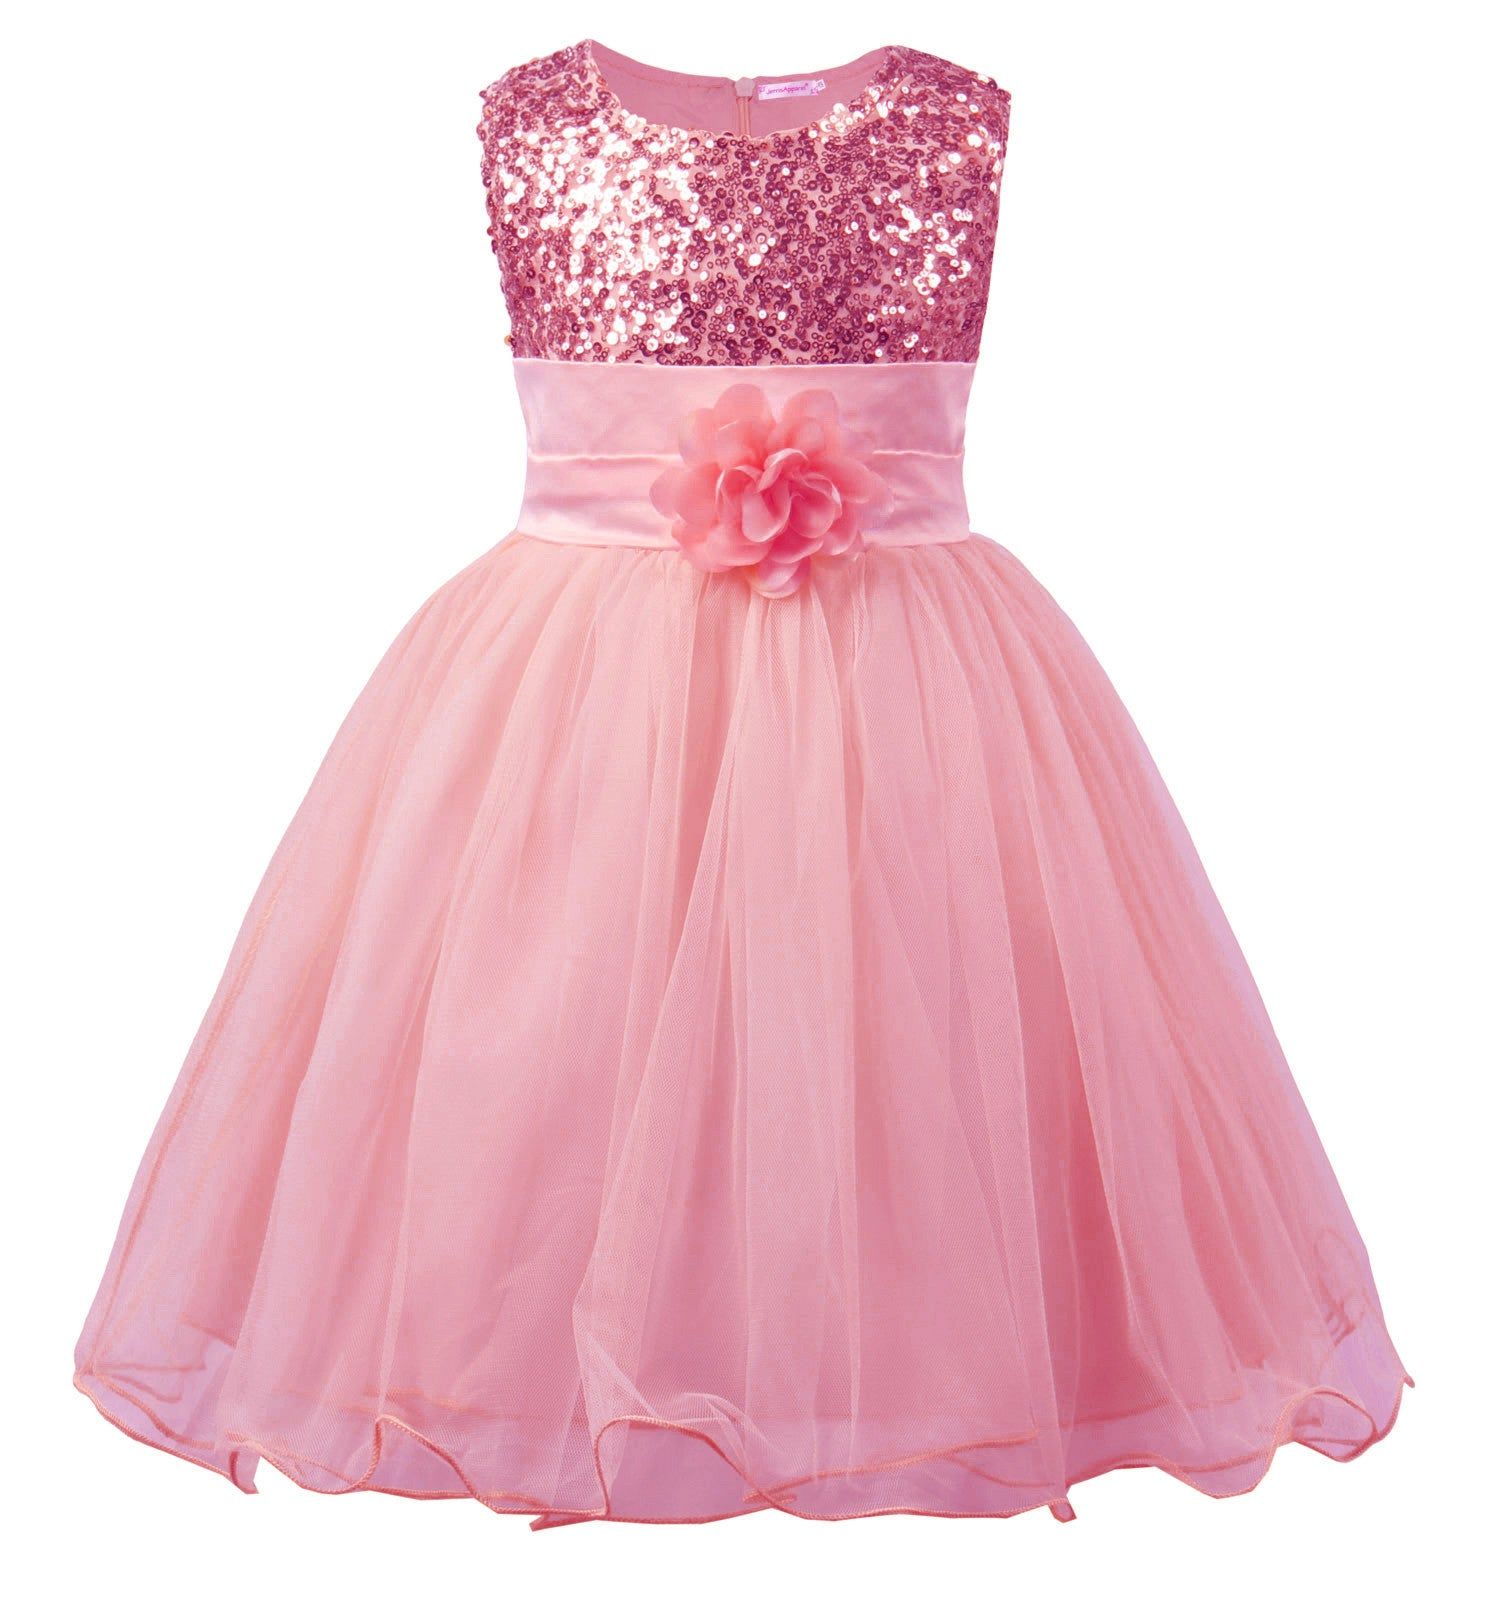 0768333f56d7 Little Girls  Sequin Mesh Flower Ball Gown Party Dress Tulle Prom ...